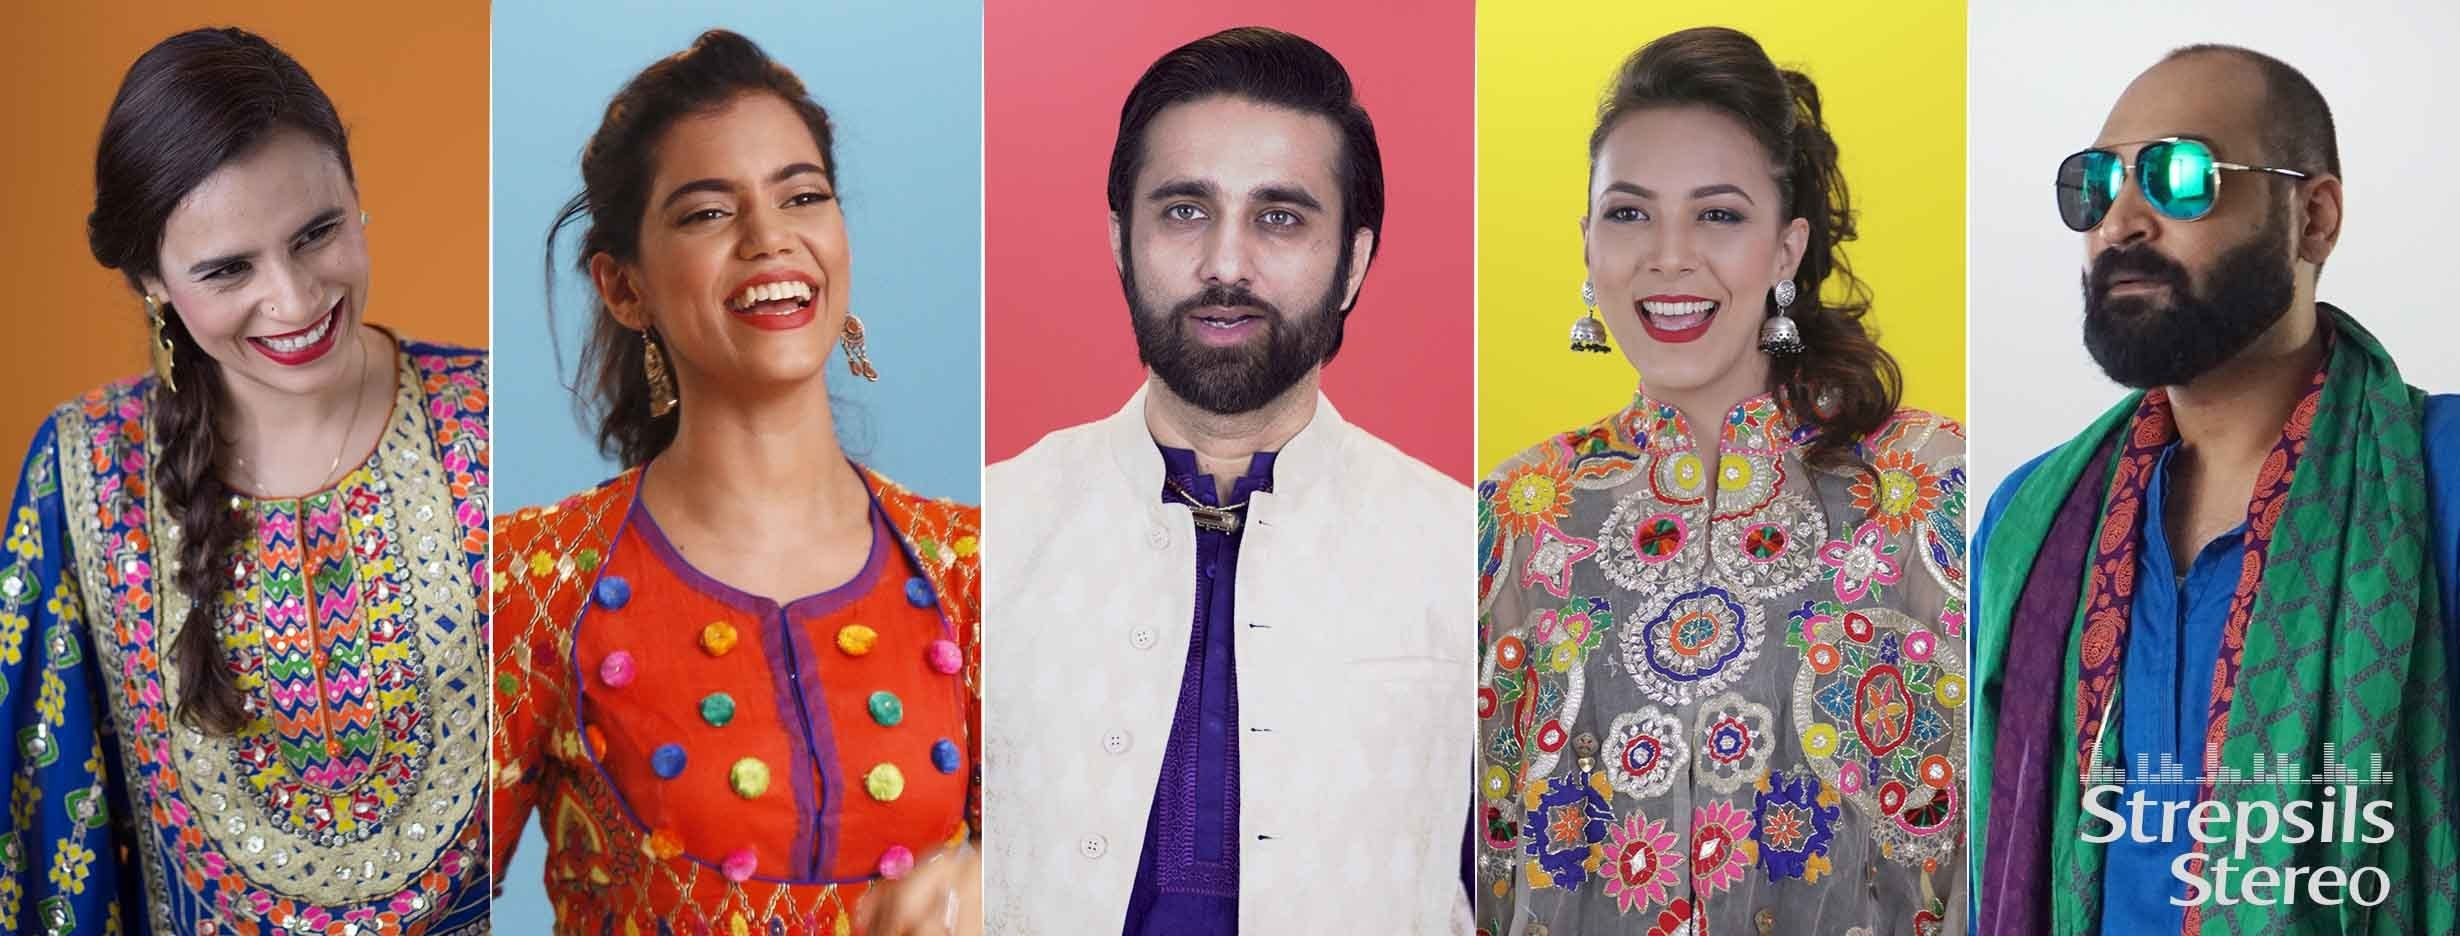 The five artists in this song are Ali Noor, Sara Haider, Zoe Viccaji, Rachel Viccaji and Ahsan Pervez Mehdi.